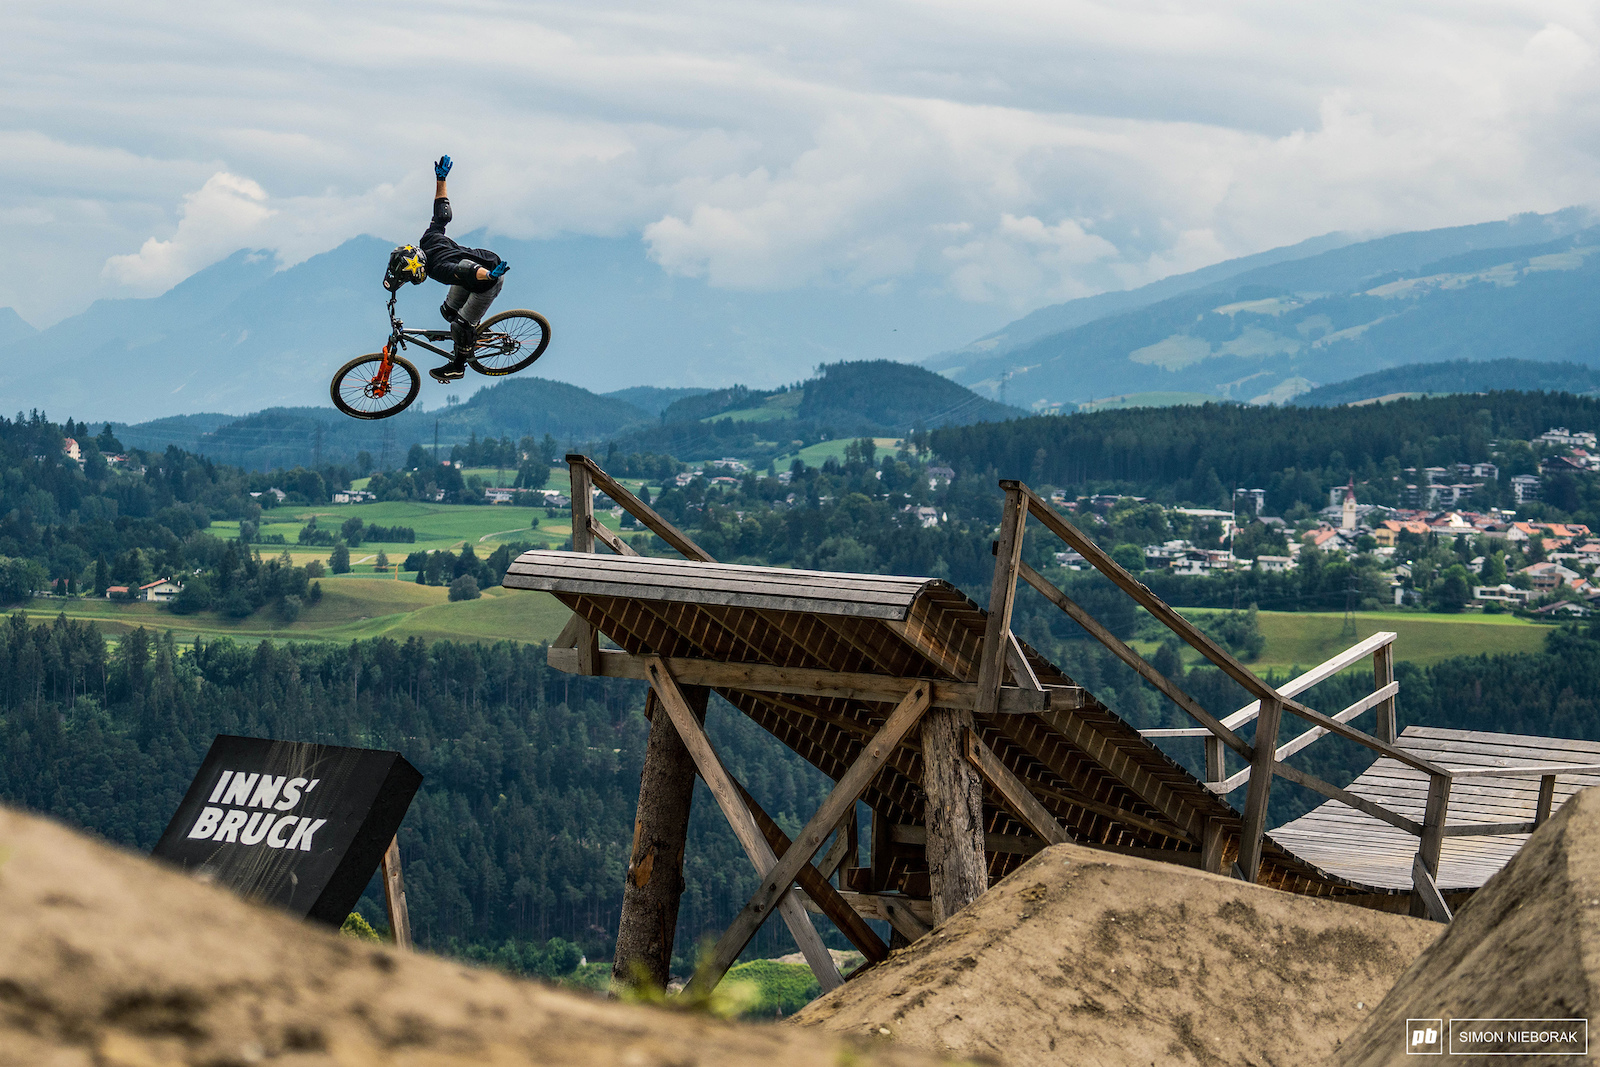 Ryan Nyquist was spinning like a mad man at the slopestyle finals. That 720 onto a whale-tail was simply insane.